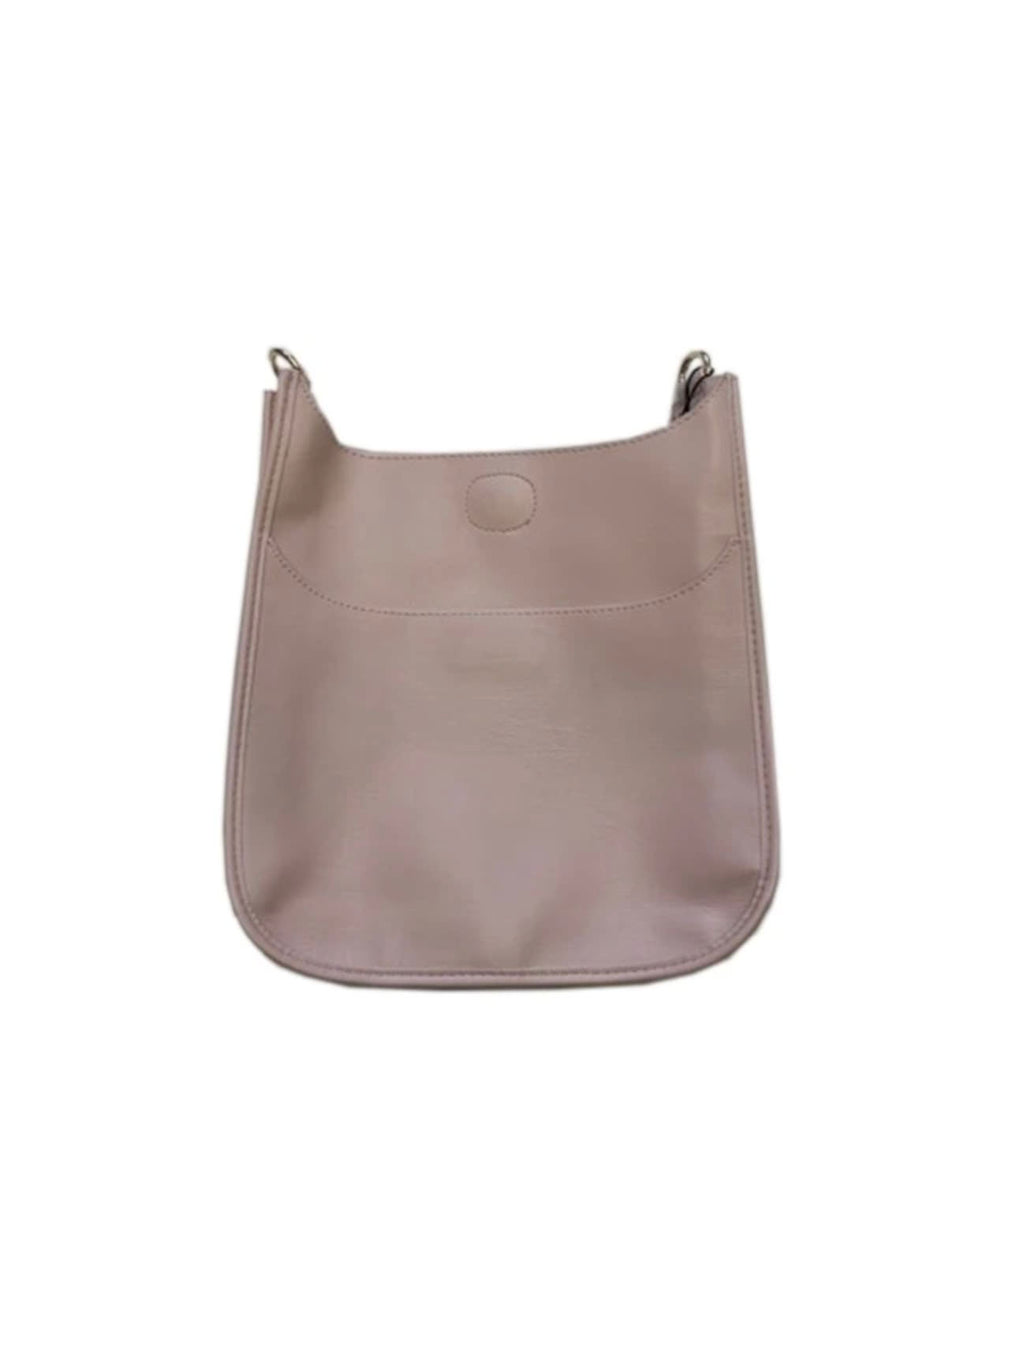 Ahdorned Faux Leather Large Messenger Bag in Blush - No Strap!